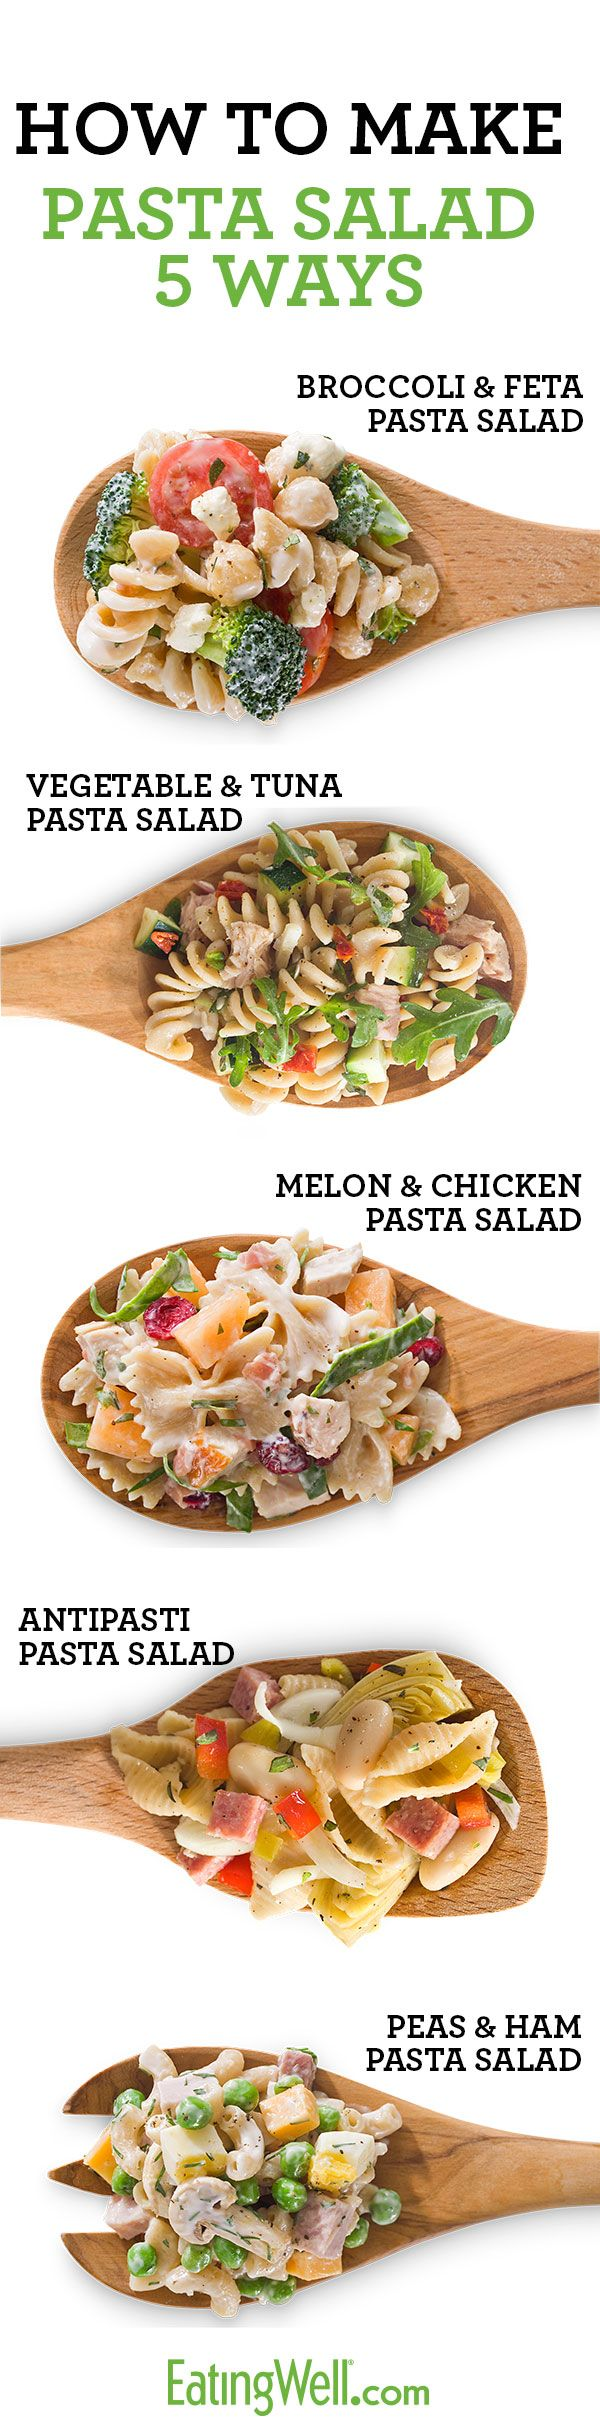 How to Make Pasta Salad 5 Ways